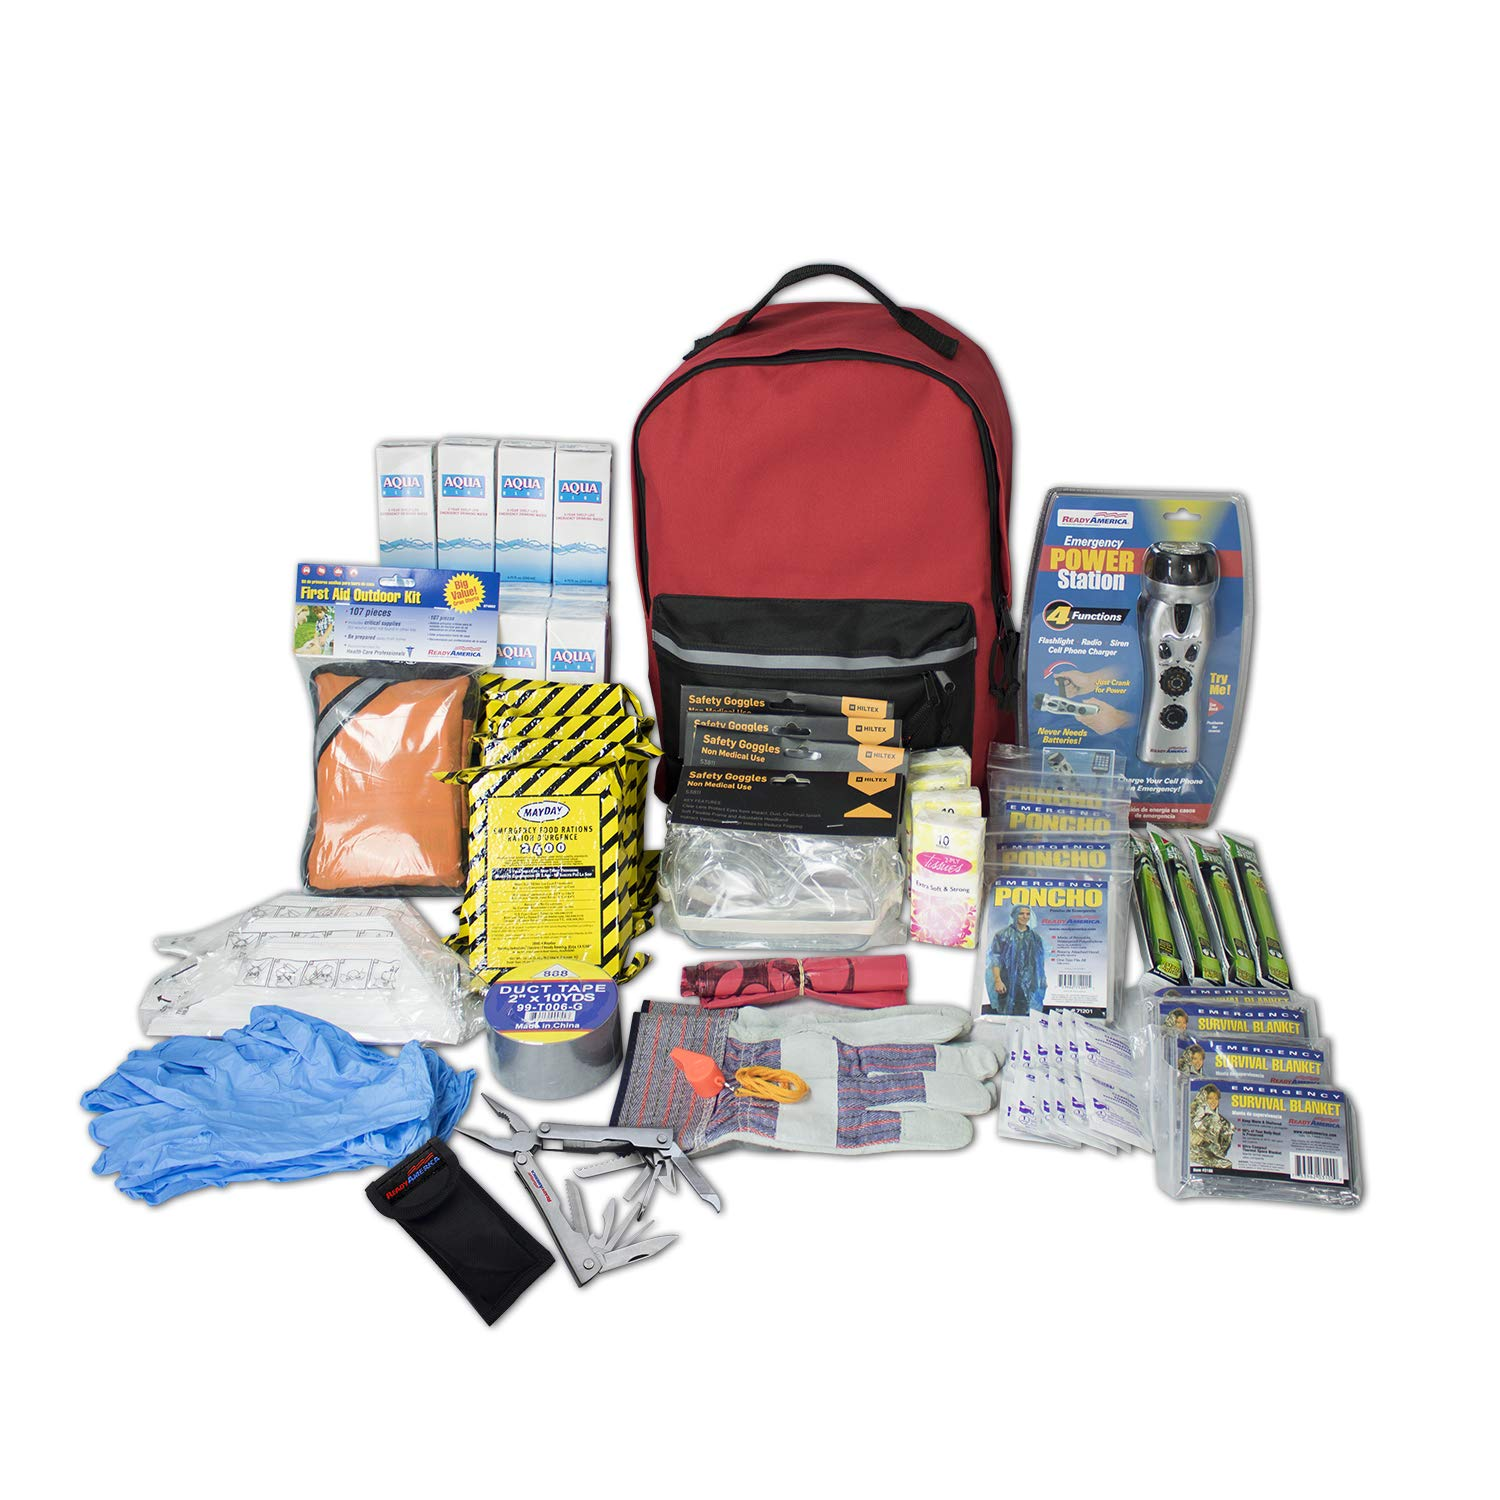 Bug Out Bag Survival Kit Prepare 4 Person 3-Day Deluxe Emergency Kit Backpack